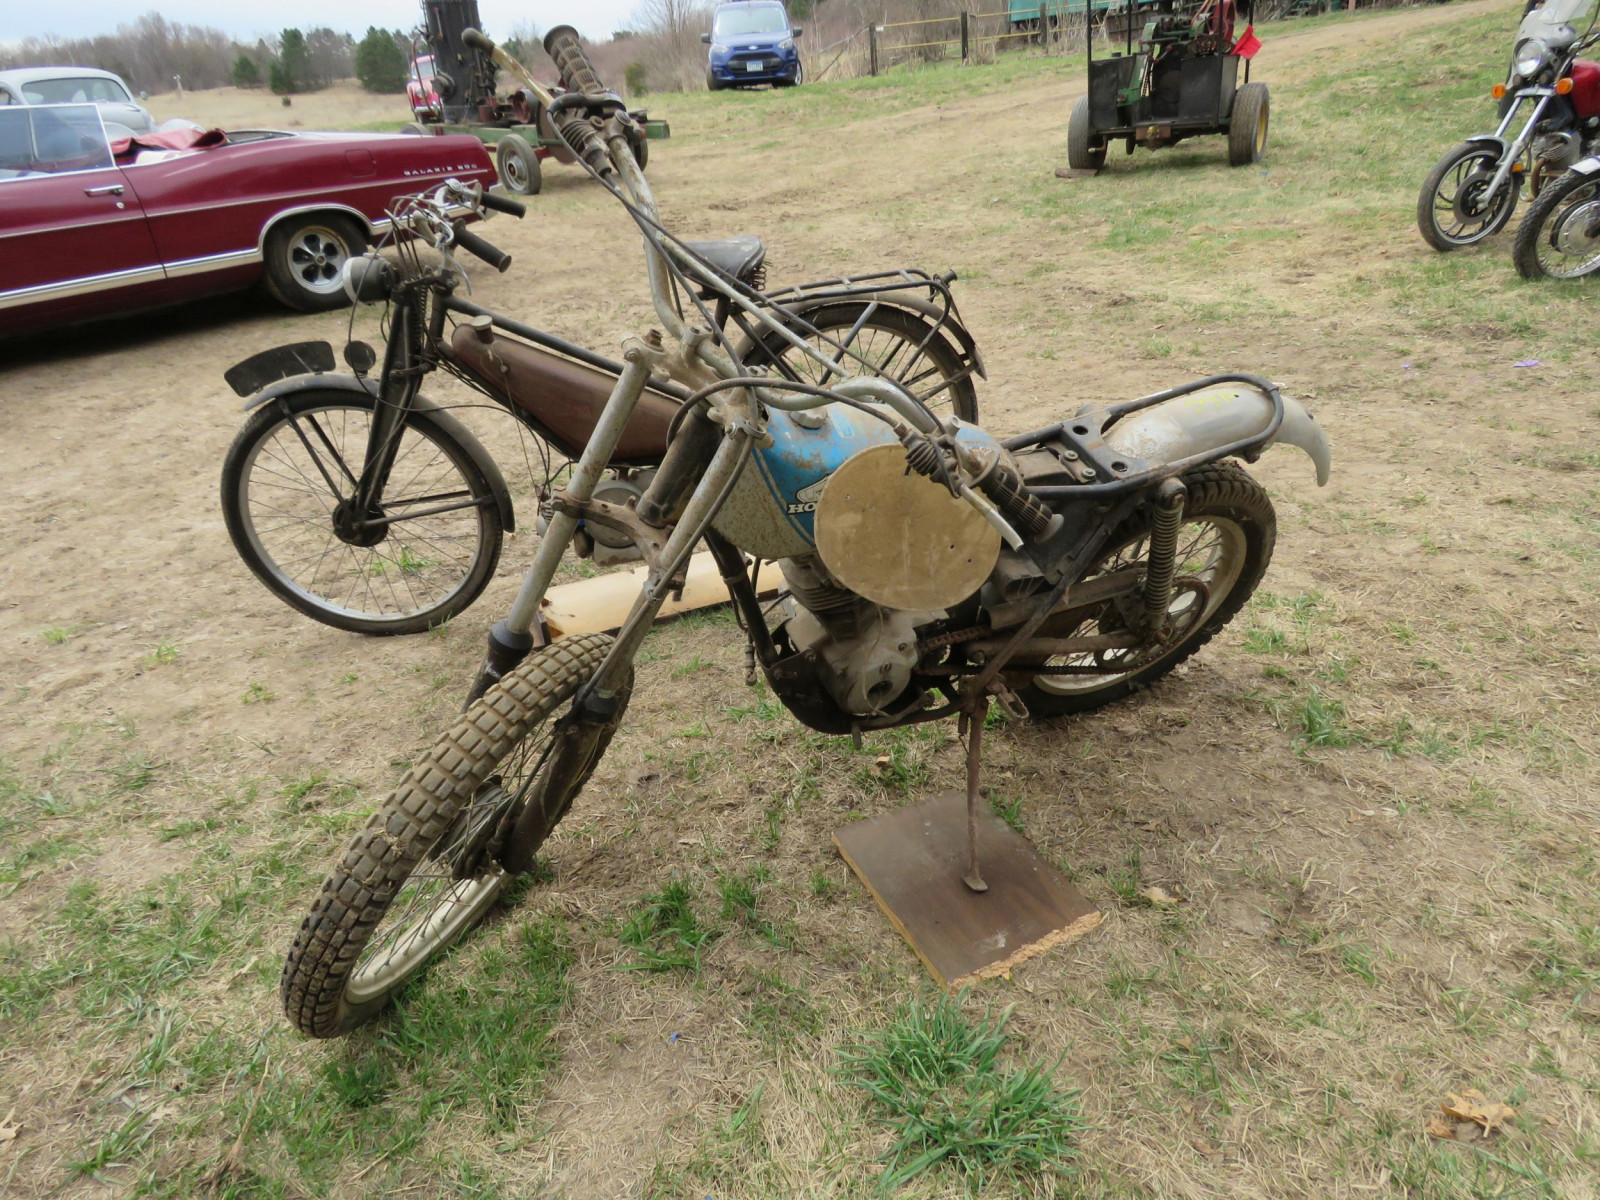 Honda Dirt bike for Project or parts - Image 1